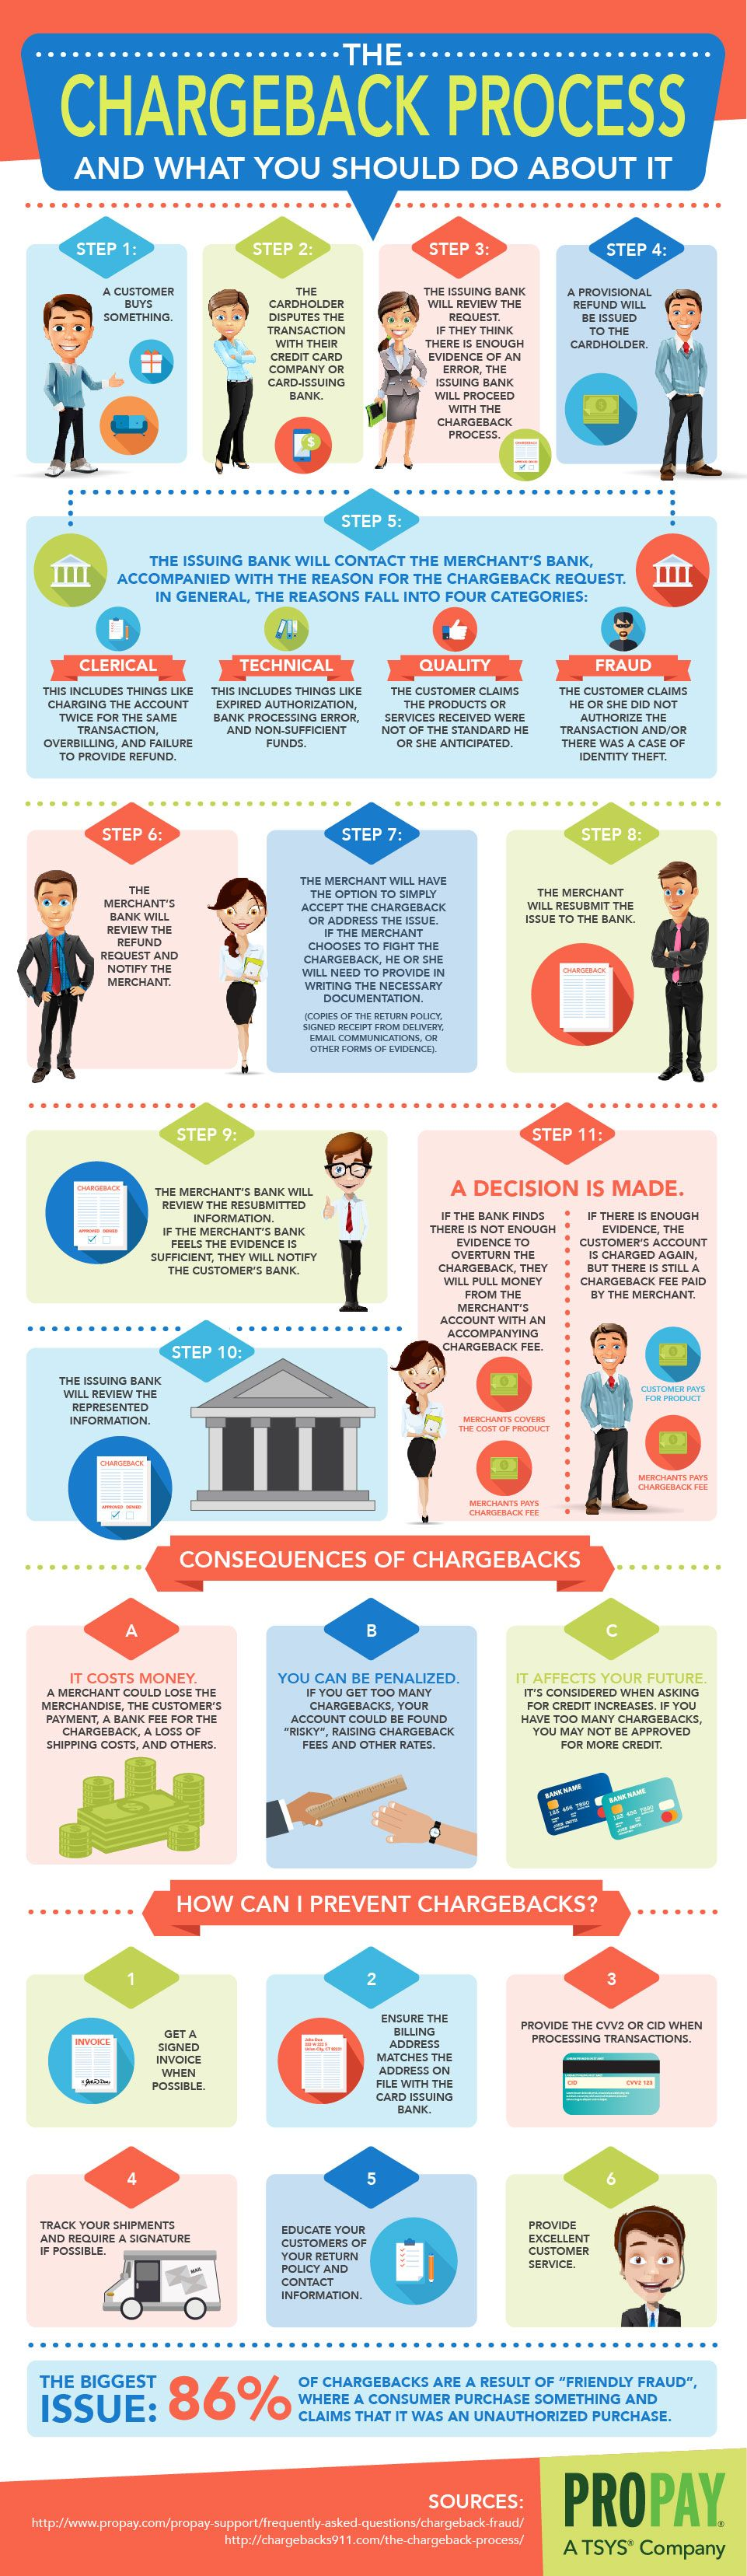 The Chargeback Process and What You Should Do About It #infographic